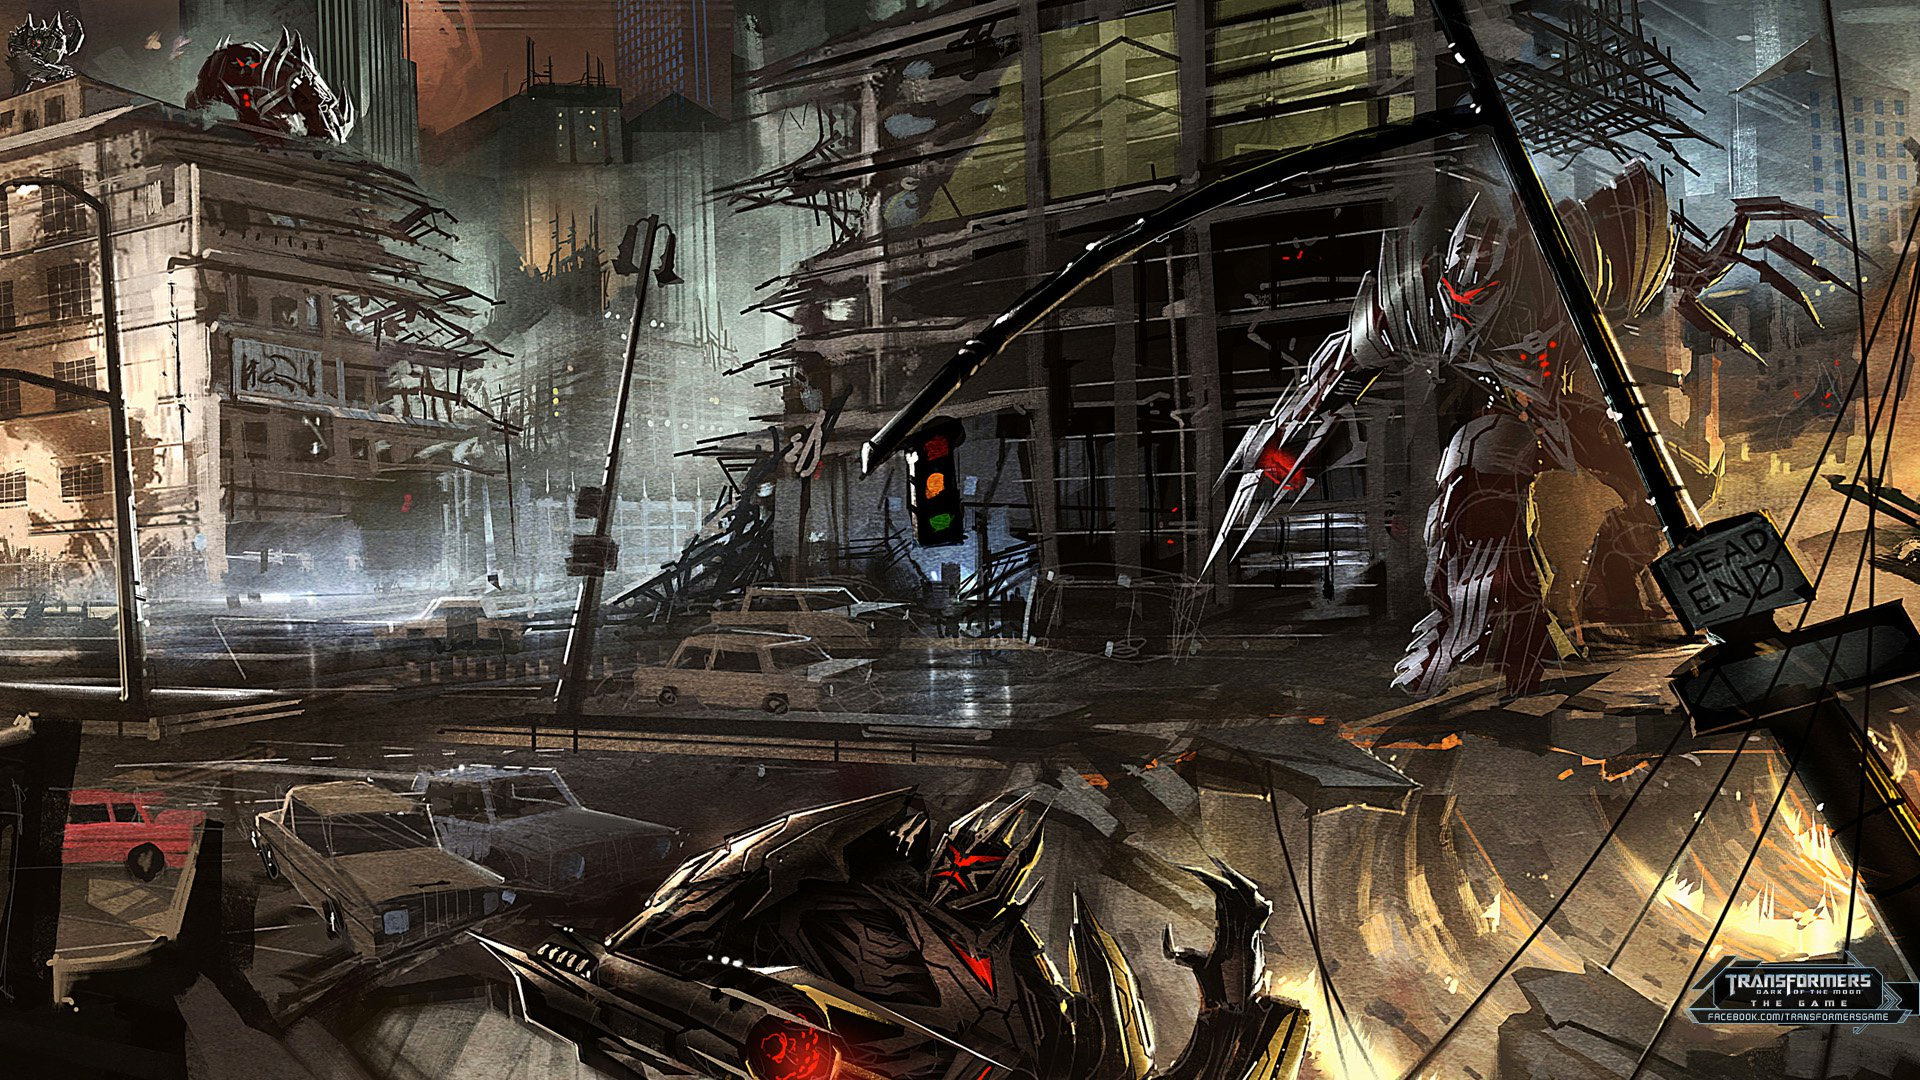 Transformers Fall Of Cybertron Wallpaper Transformers Dark Of The Moon Video Game Concept Art